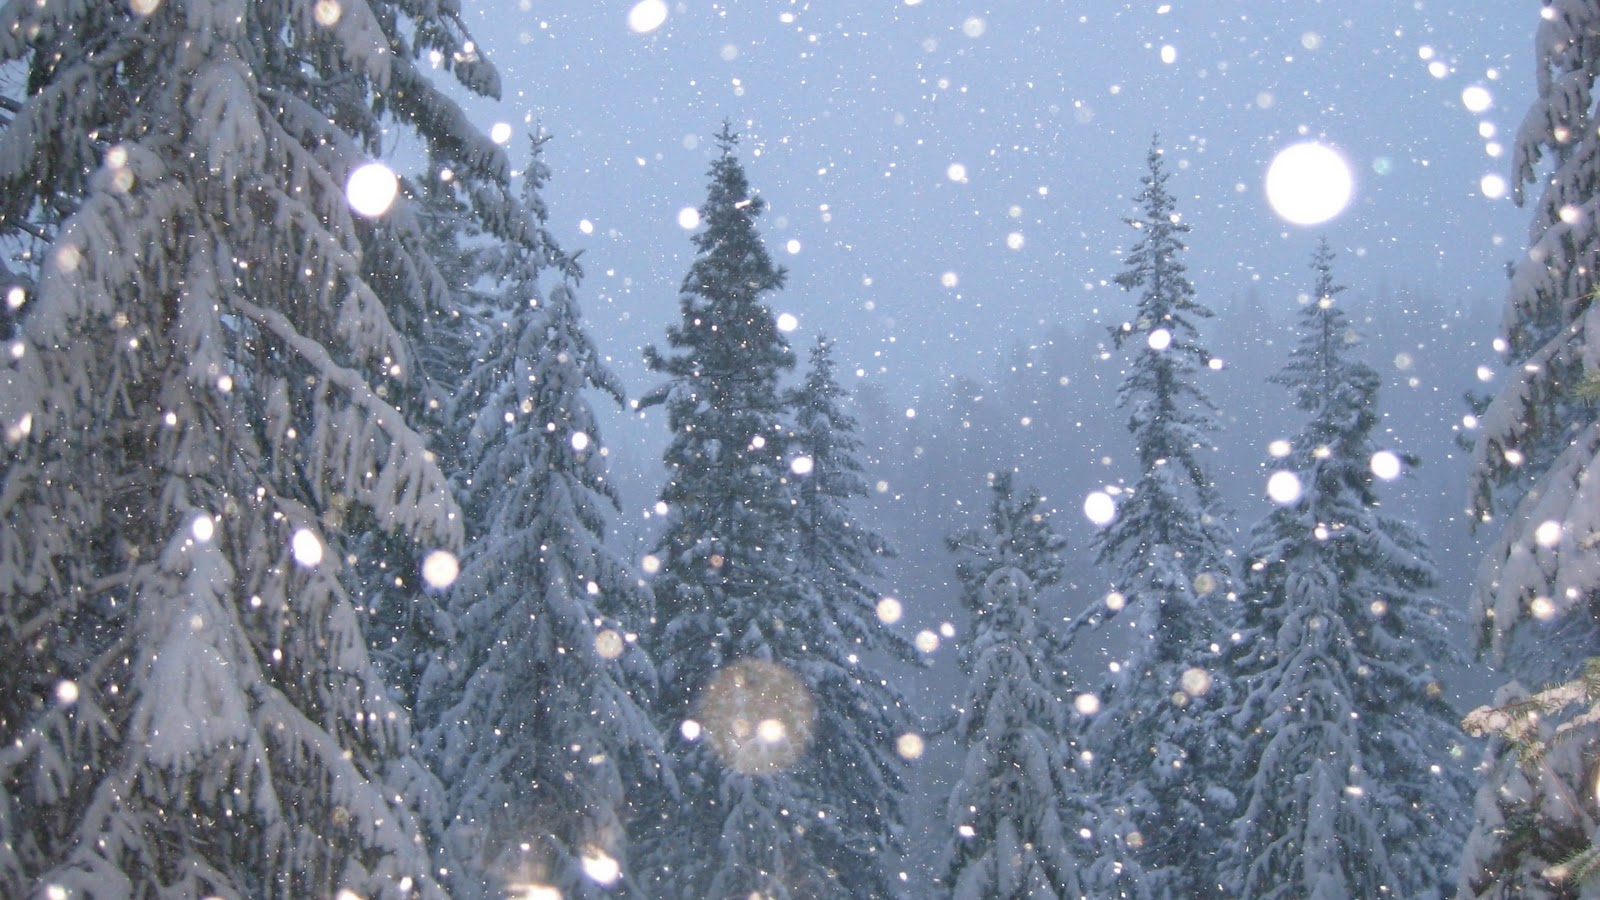 Christmas Wallpaper Moving Snow Falling - WallpaperSafari